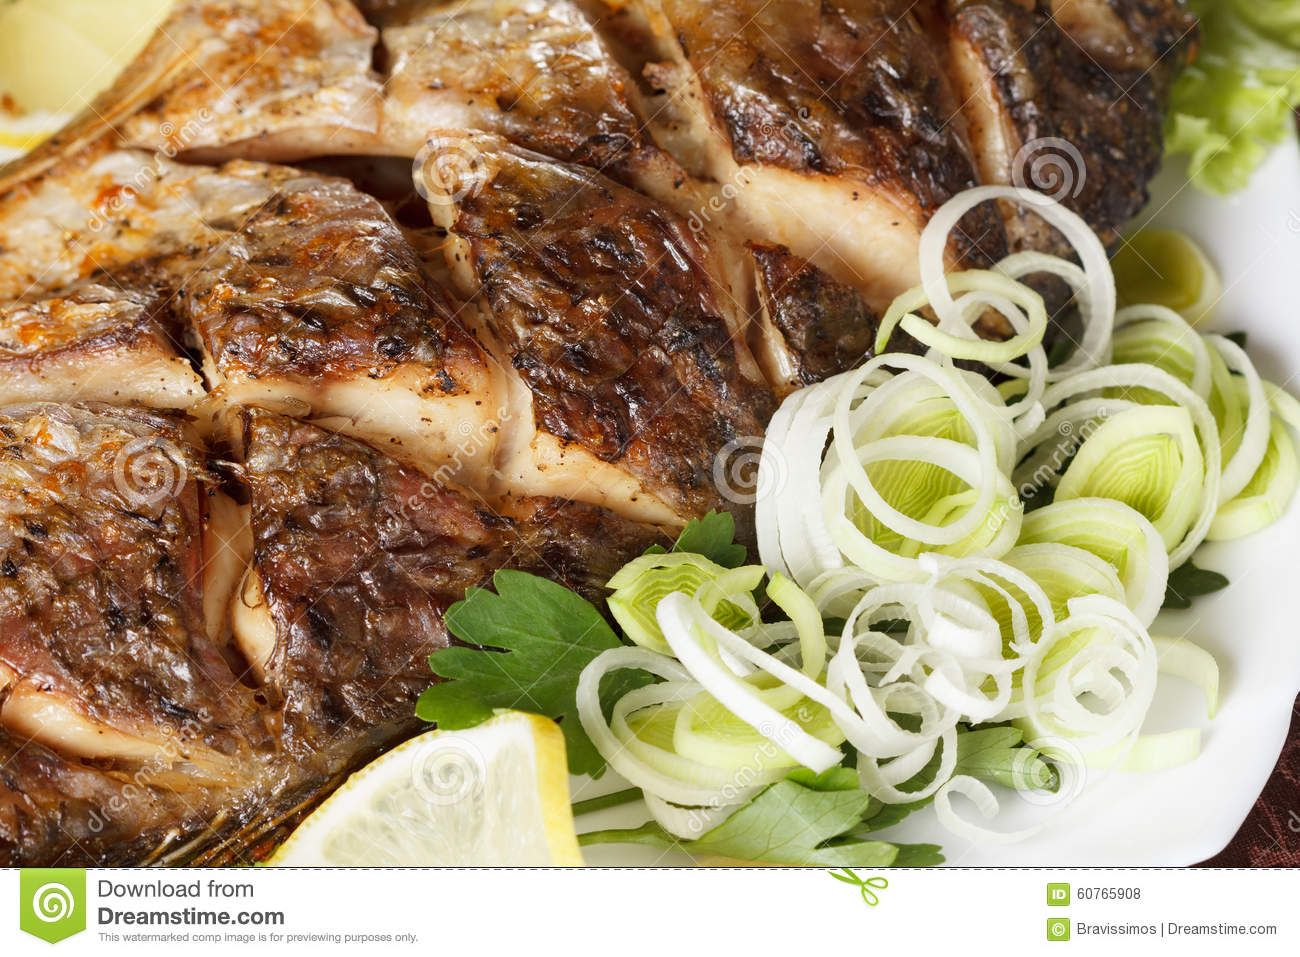 grilled carp fish with vegetables entirely traditional christmas meal - Traditional Christmas Meal